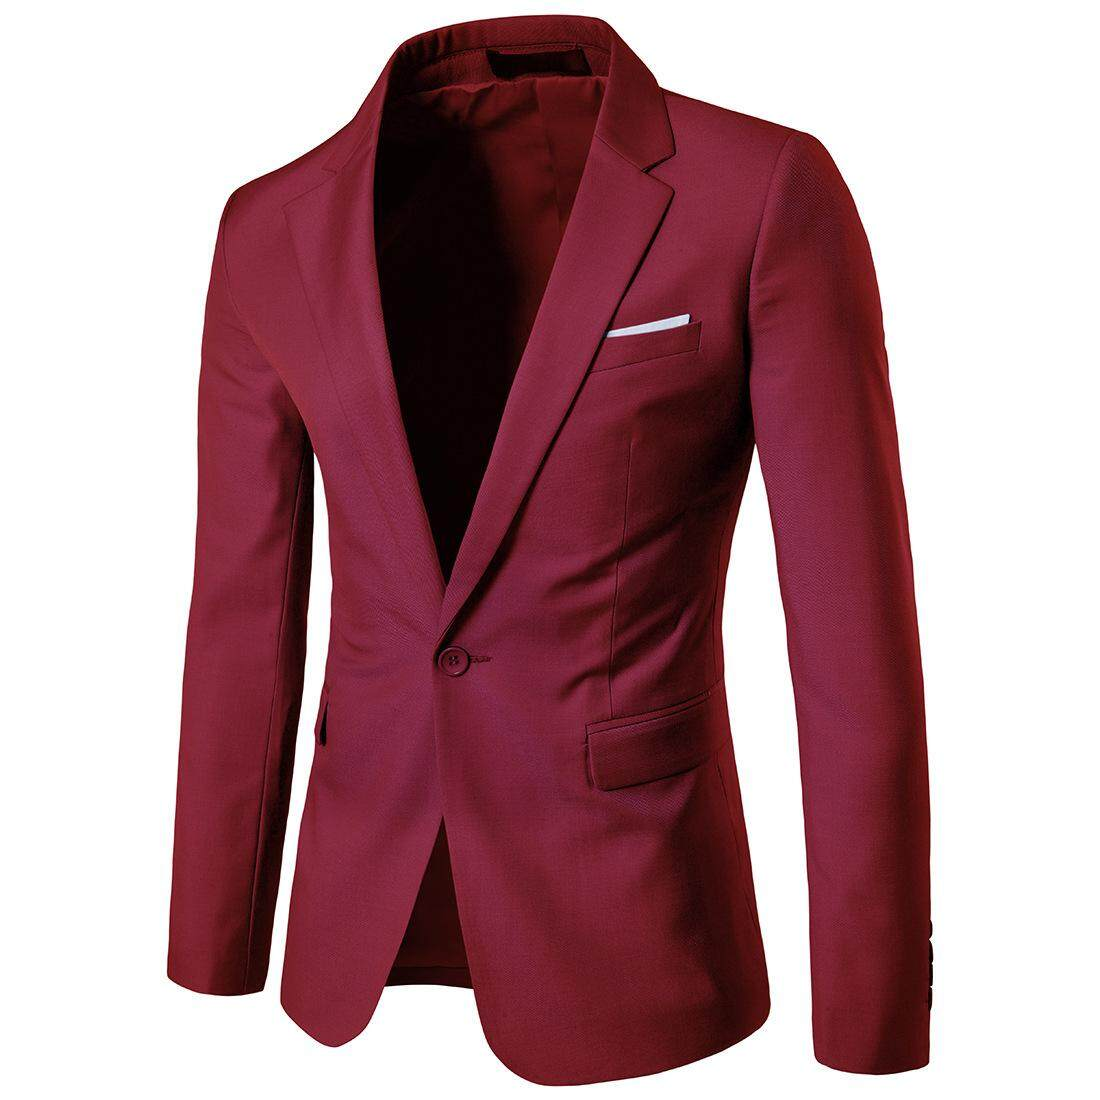 50a0d907be3 Men Blazer 2018 New Suit Men Casual Jacket Latest Coat Designs Blazers Men  Clothing Plus Size